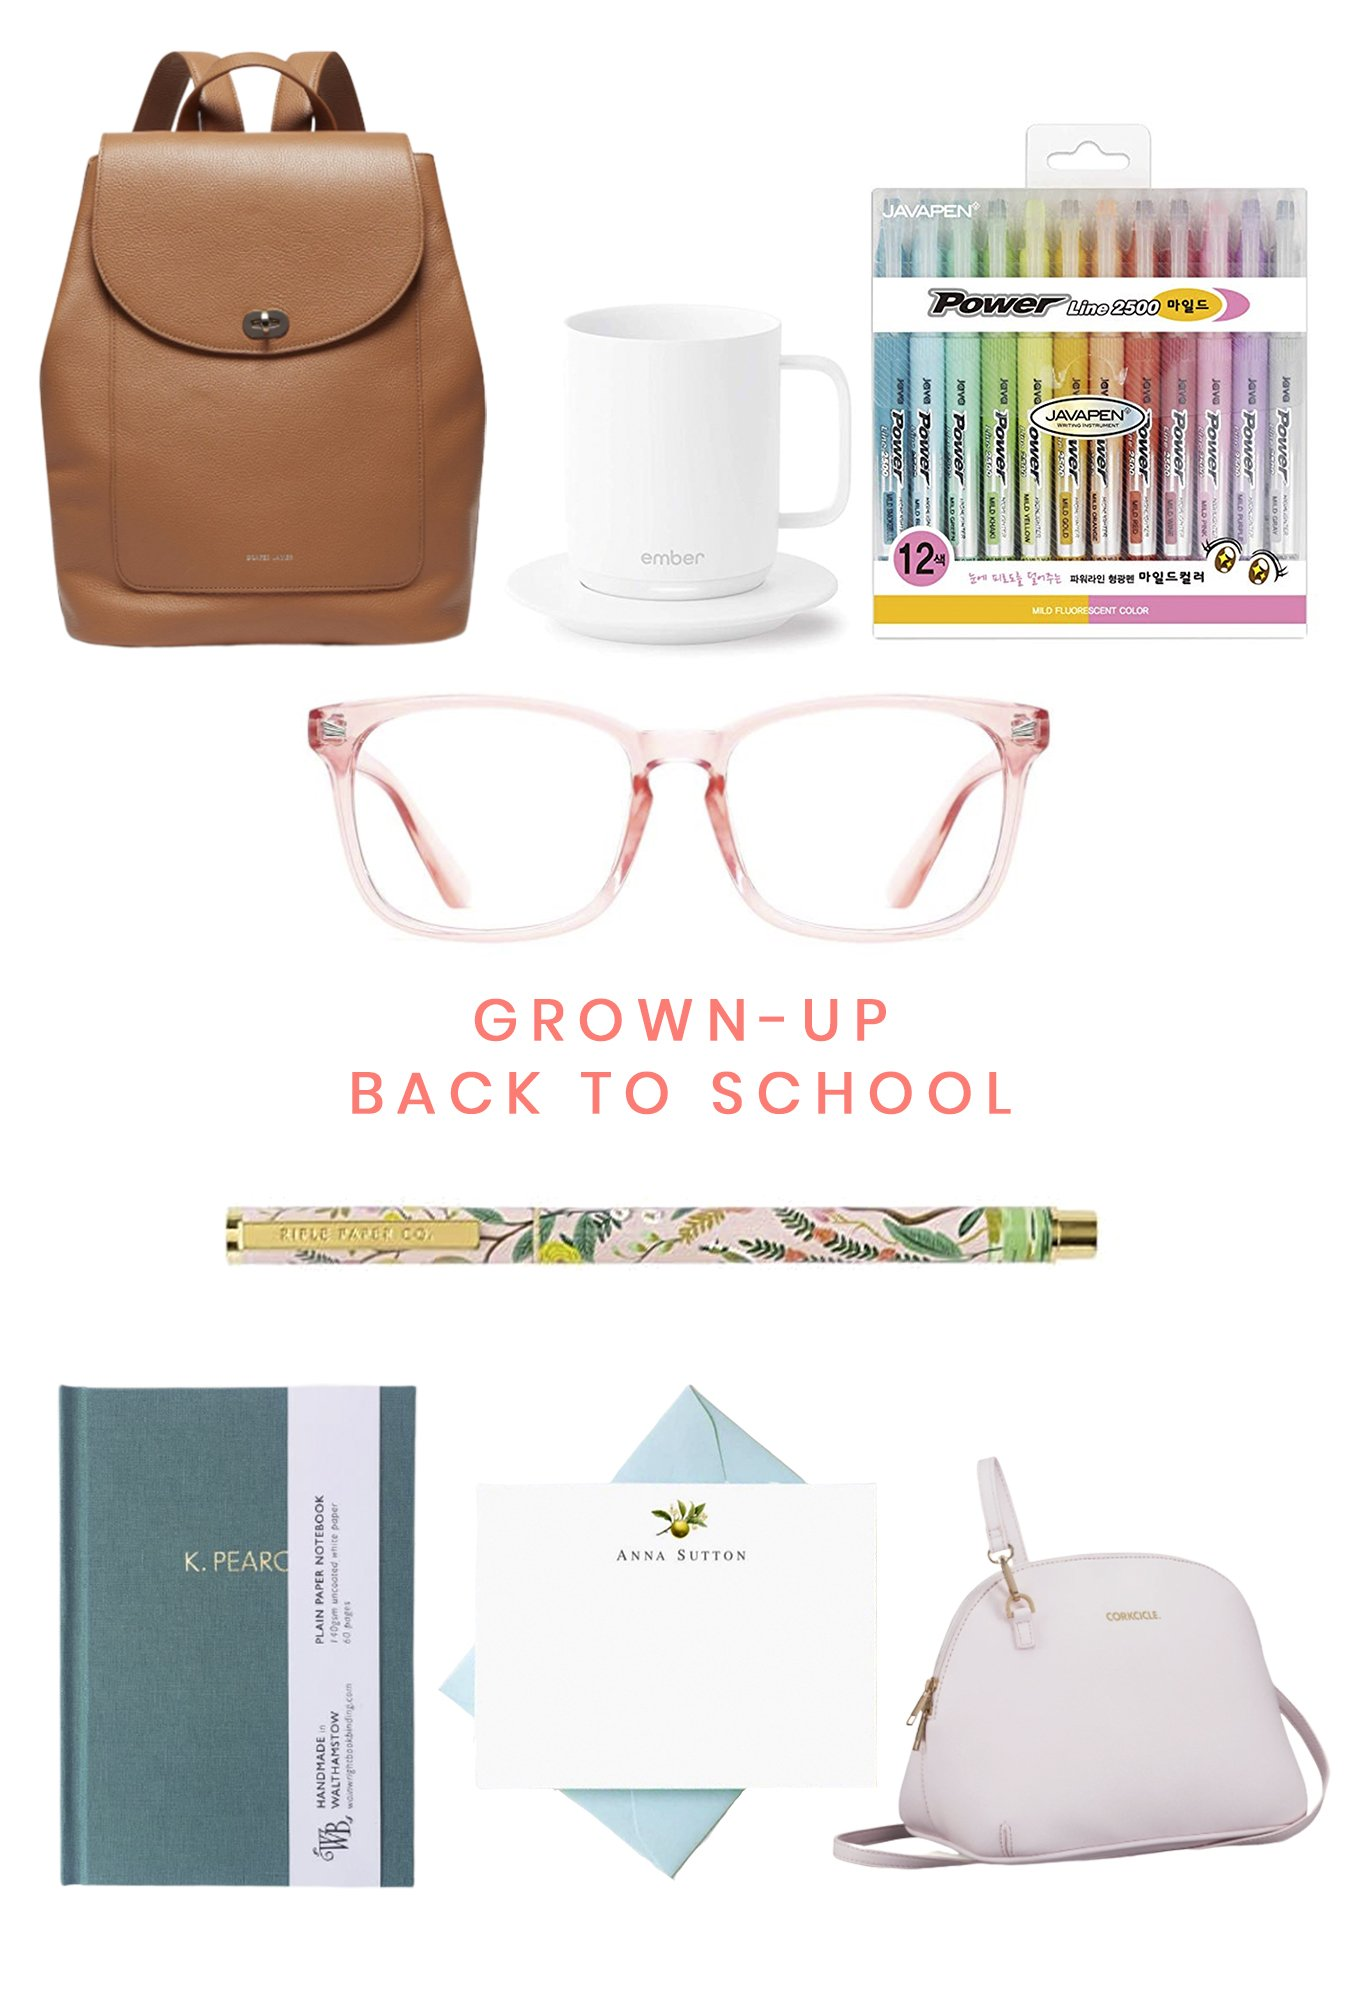 Grown-up Back to School Shopping List on Ashleybrookedesigns.com